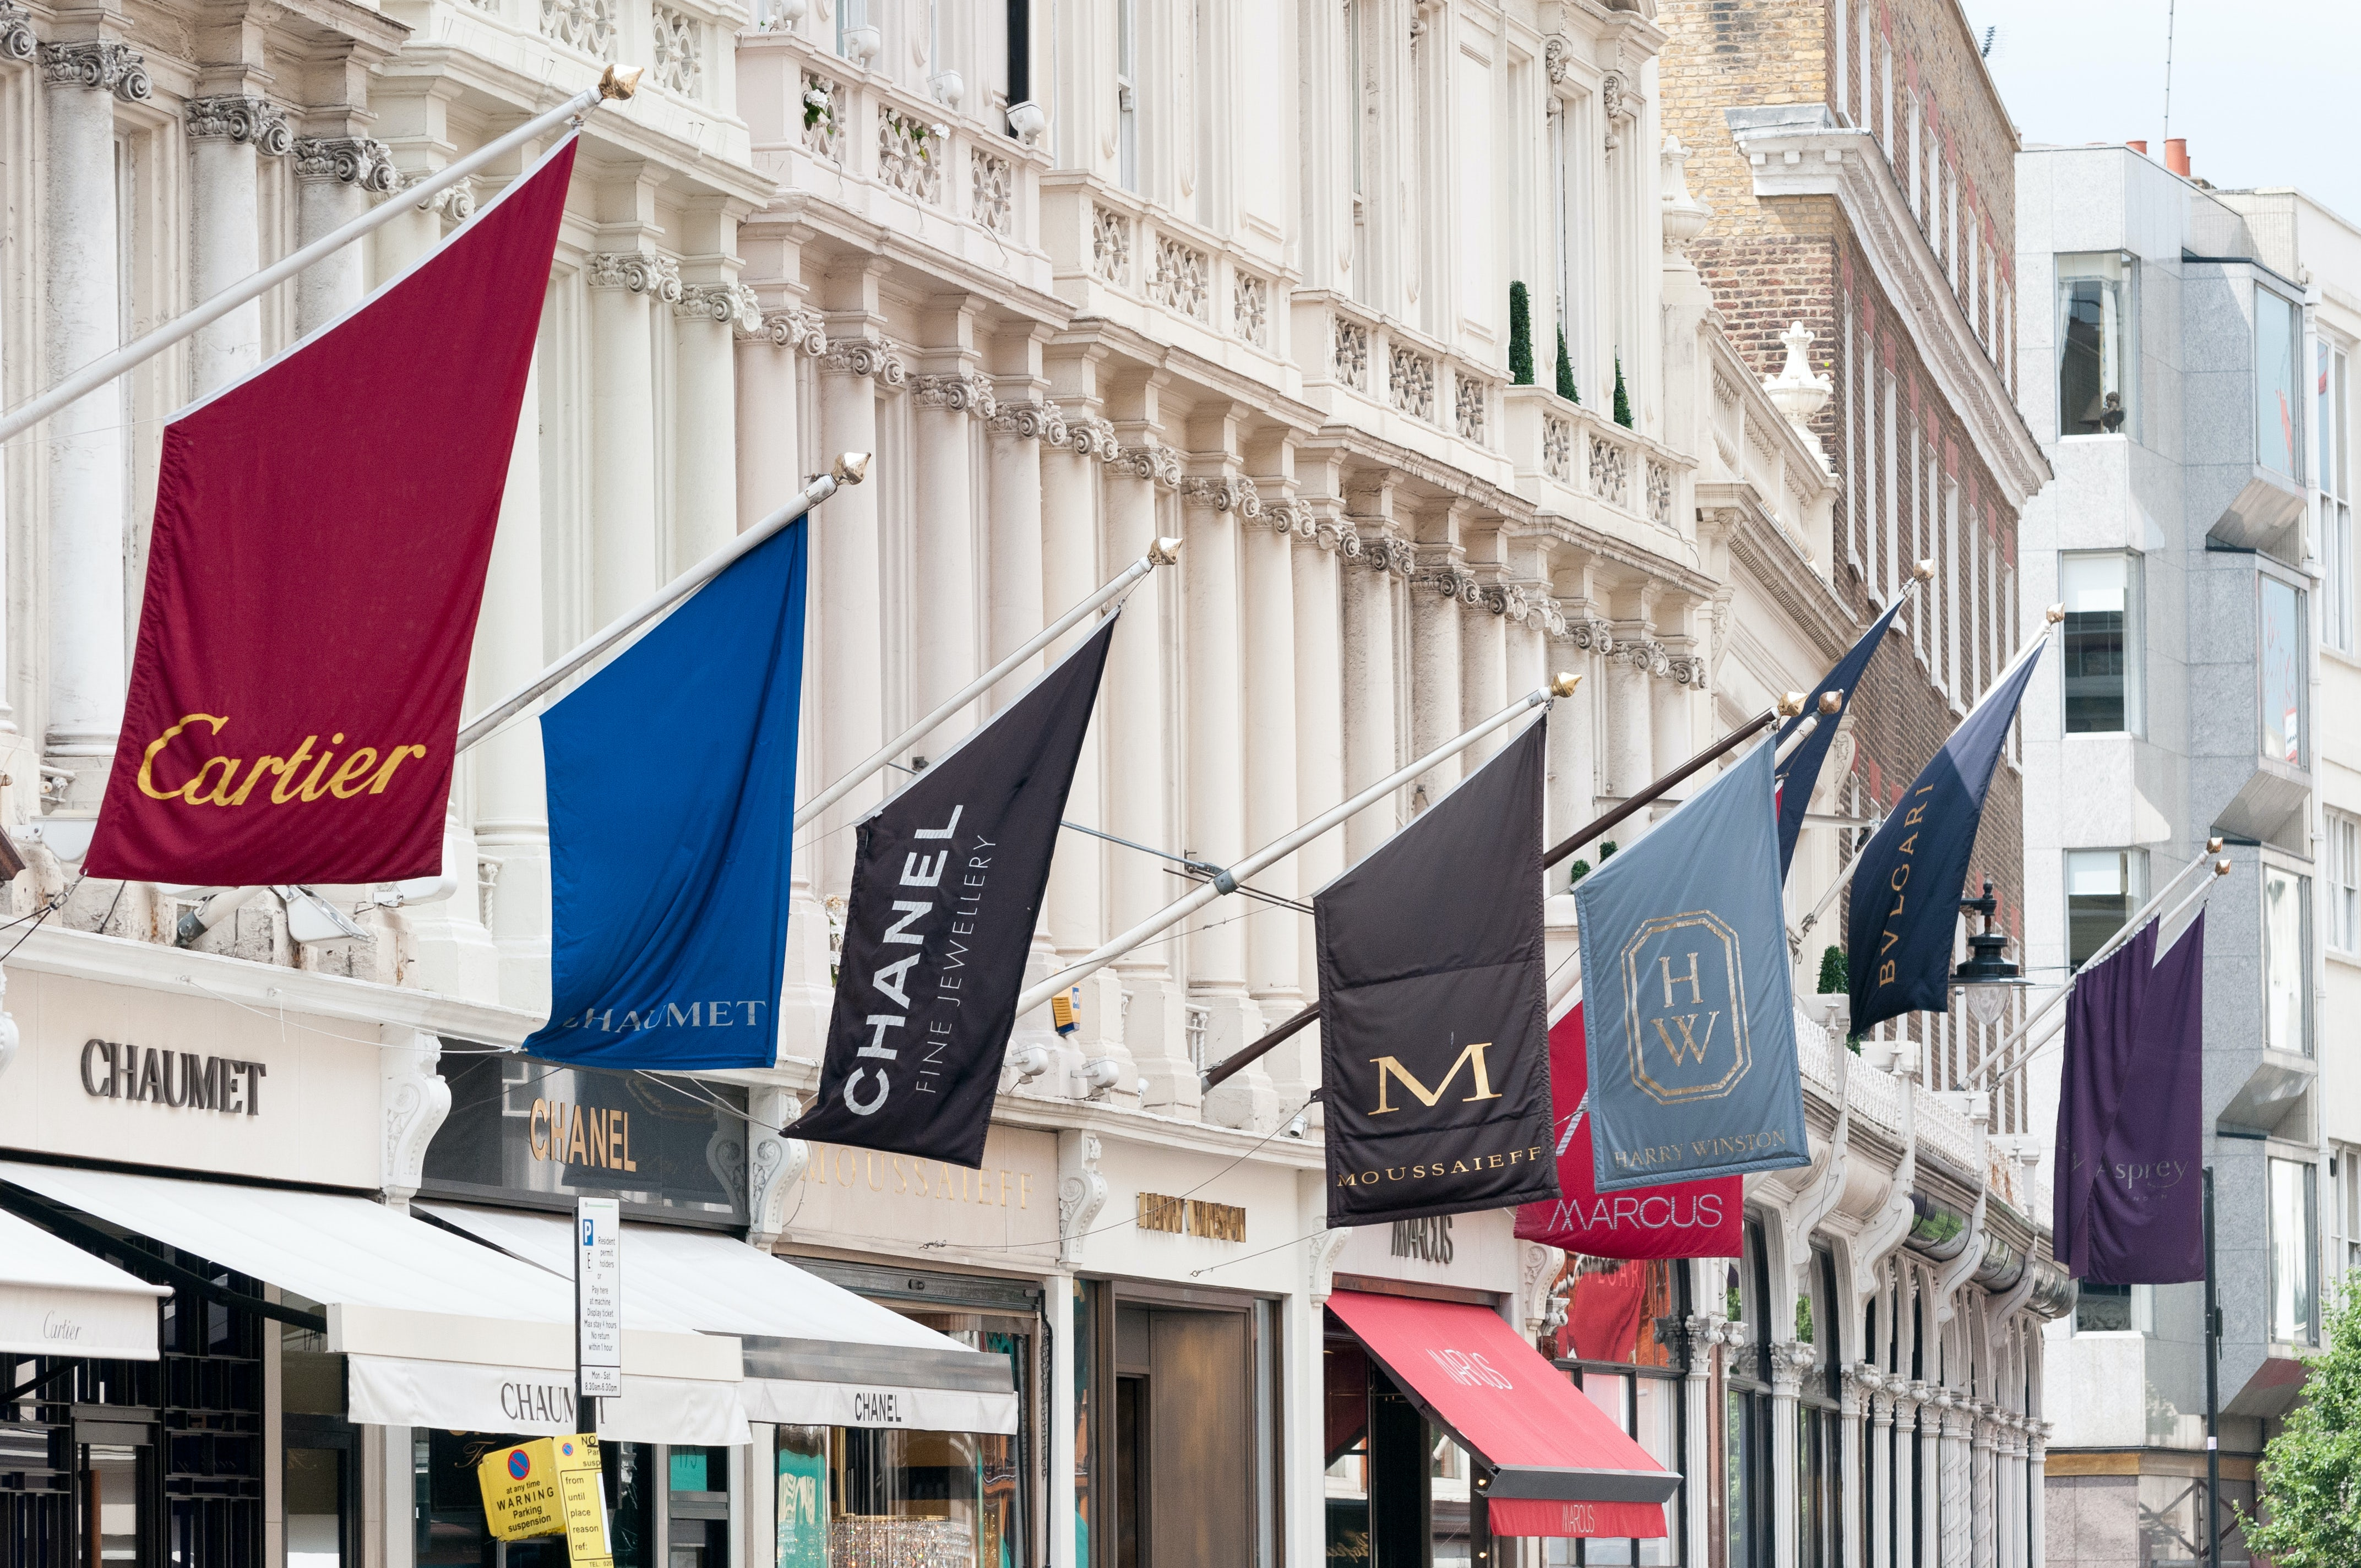 Luxury stores on Bond Street, London | Source: Shutterstock